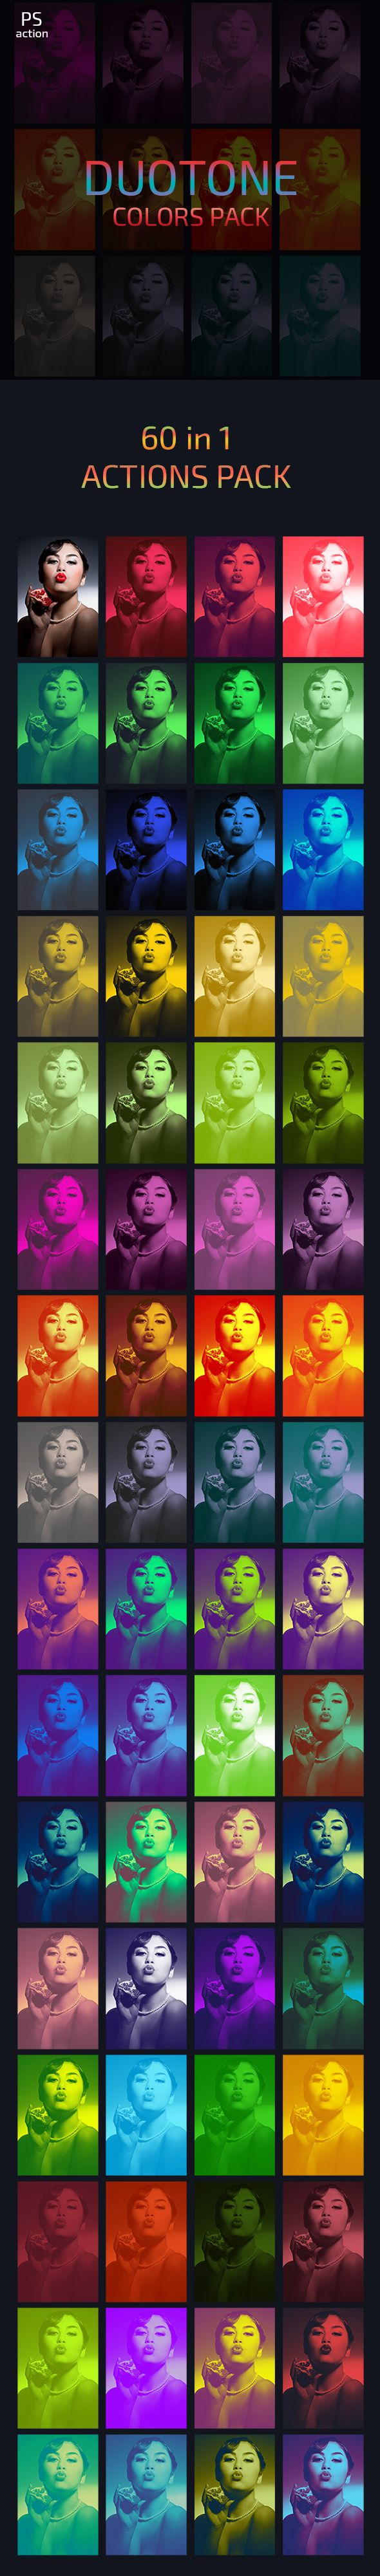 60 Duotone Color Photo Effects Actions Pack — Photoshop ATN #vfx #vignette • Available here → https://graphicriver.net/item/60-duotone-color-photo-effects-actions-pack/16265721?ref=pxcr